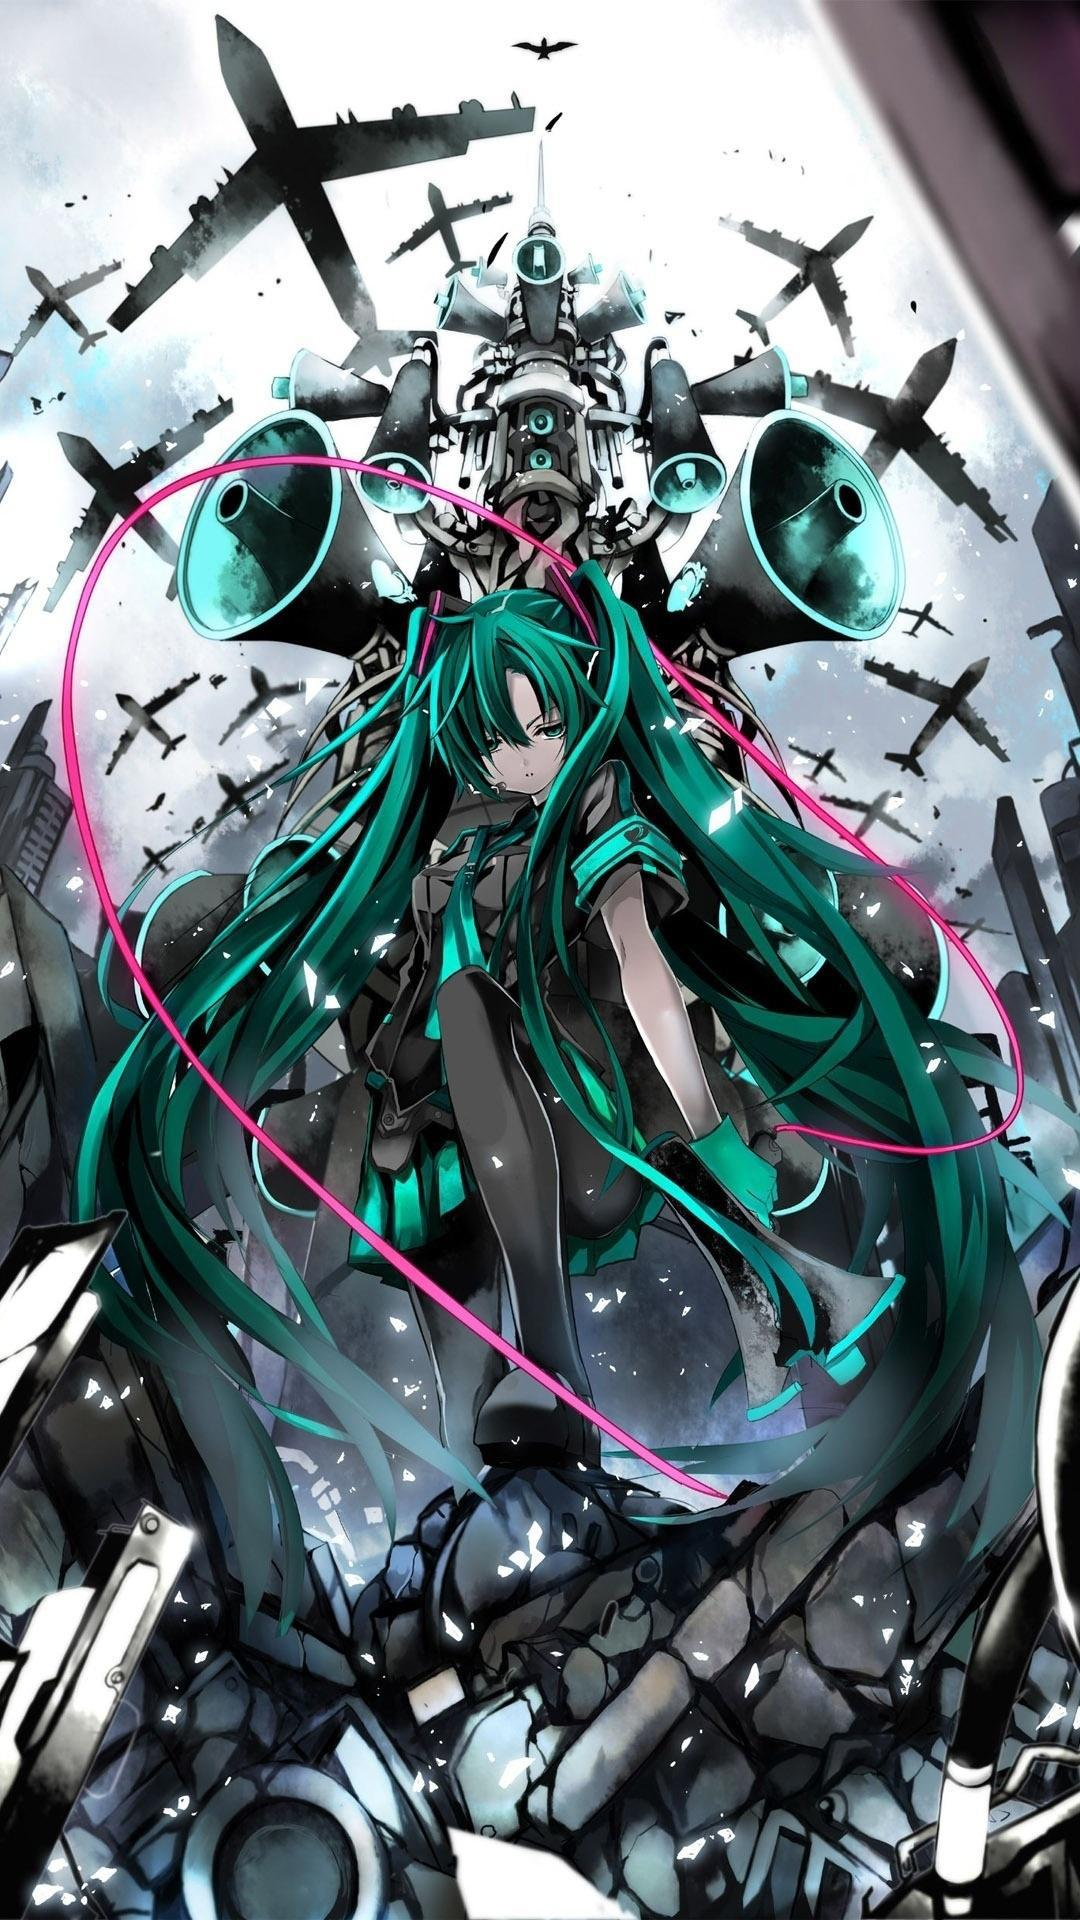 Anime Wallpapers Old Mobile Cell Phone Smartphone Desktop